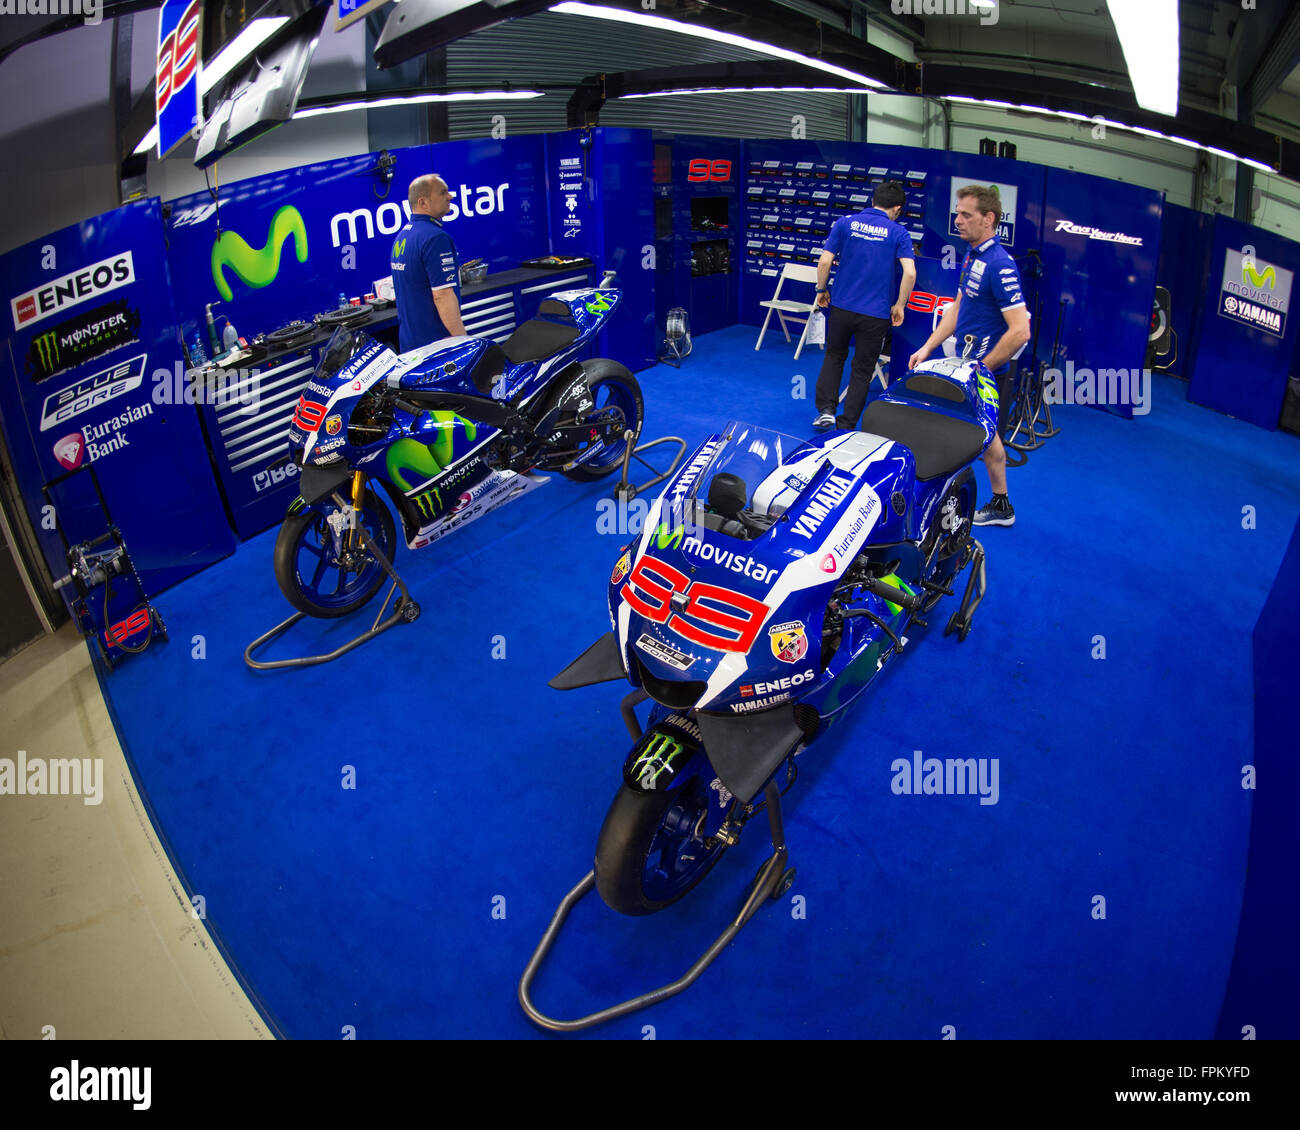 Garage Yamaha Losail International Circuit Qatar 19th March 2016 The Movistar